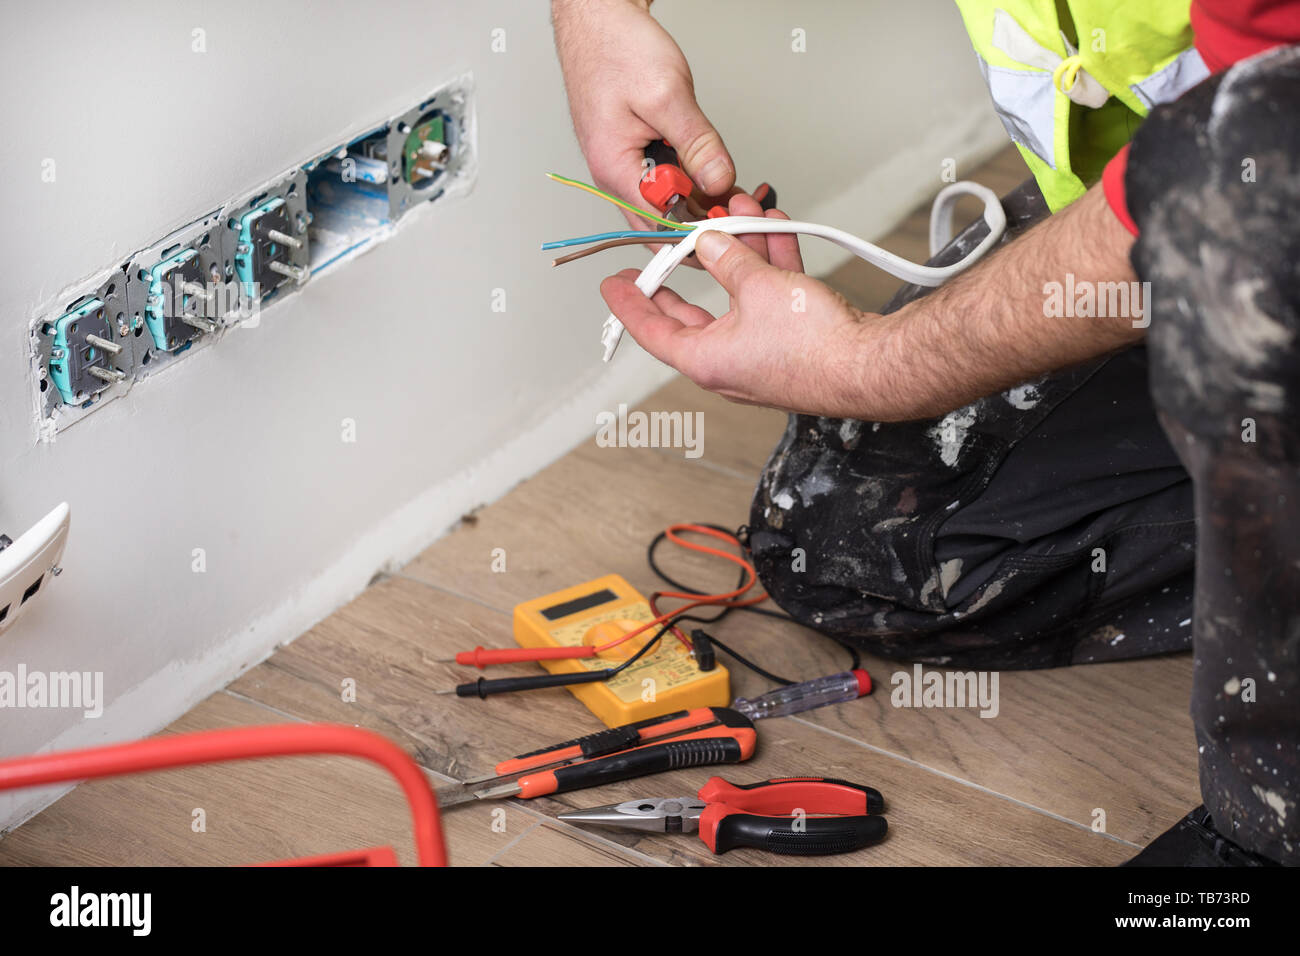 Electrician At Work Home Renovation Electrical Installation Hand Of An Electrician Stock Photo Alamy